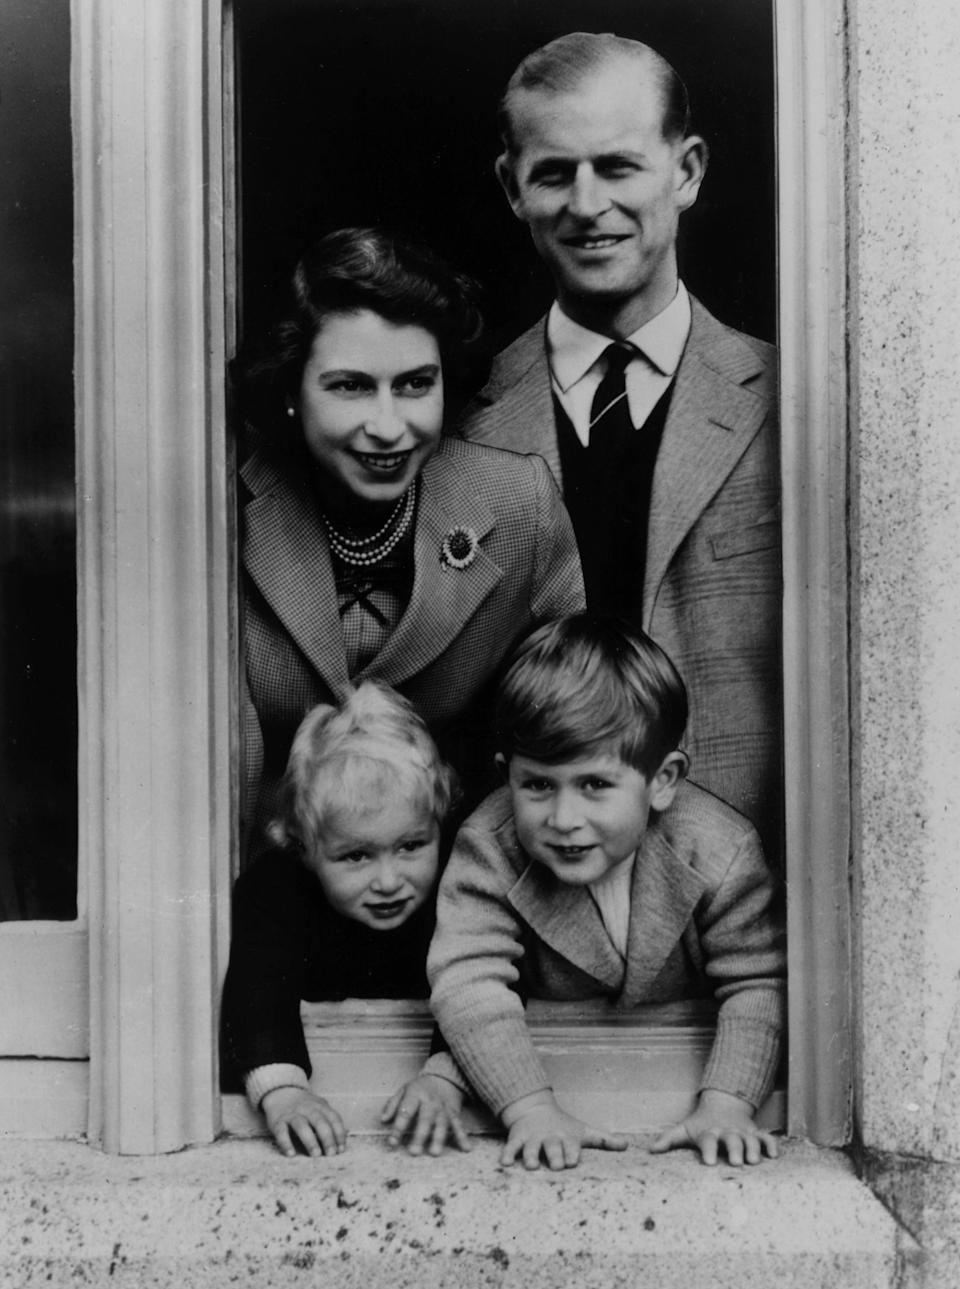 <p>A cozy family moment captured when Philip, Queen Elizabeth, Princess Anne and Prince Charles squeezed into frame at Balmoral Castle in Scotland in 1952. Photo: Getty Images.</p>